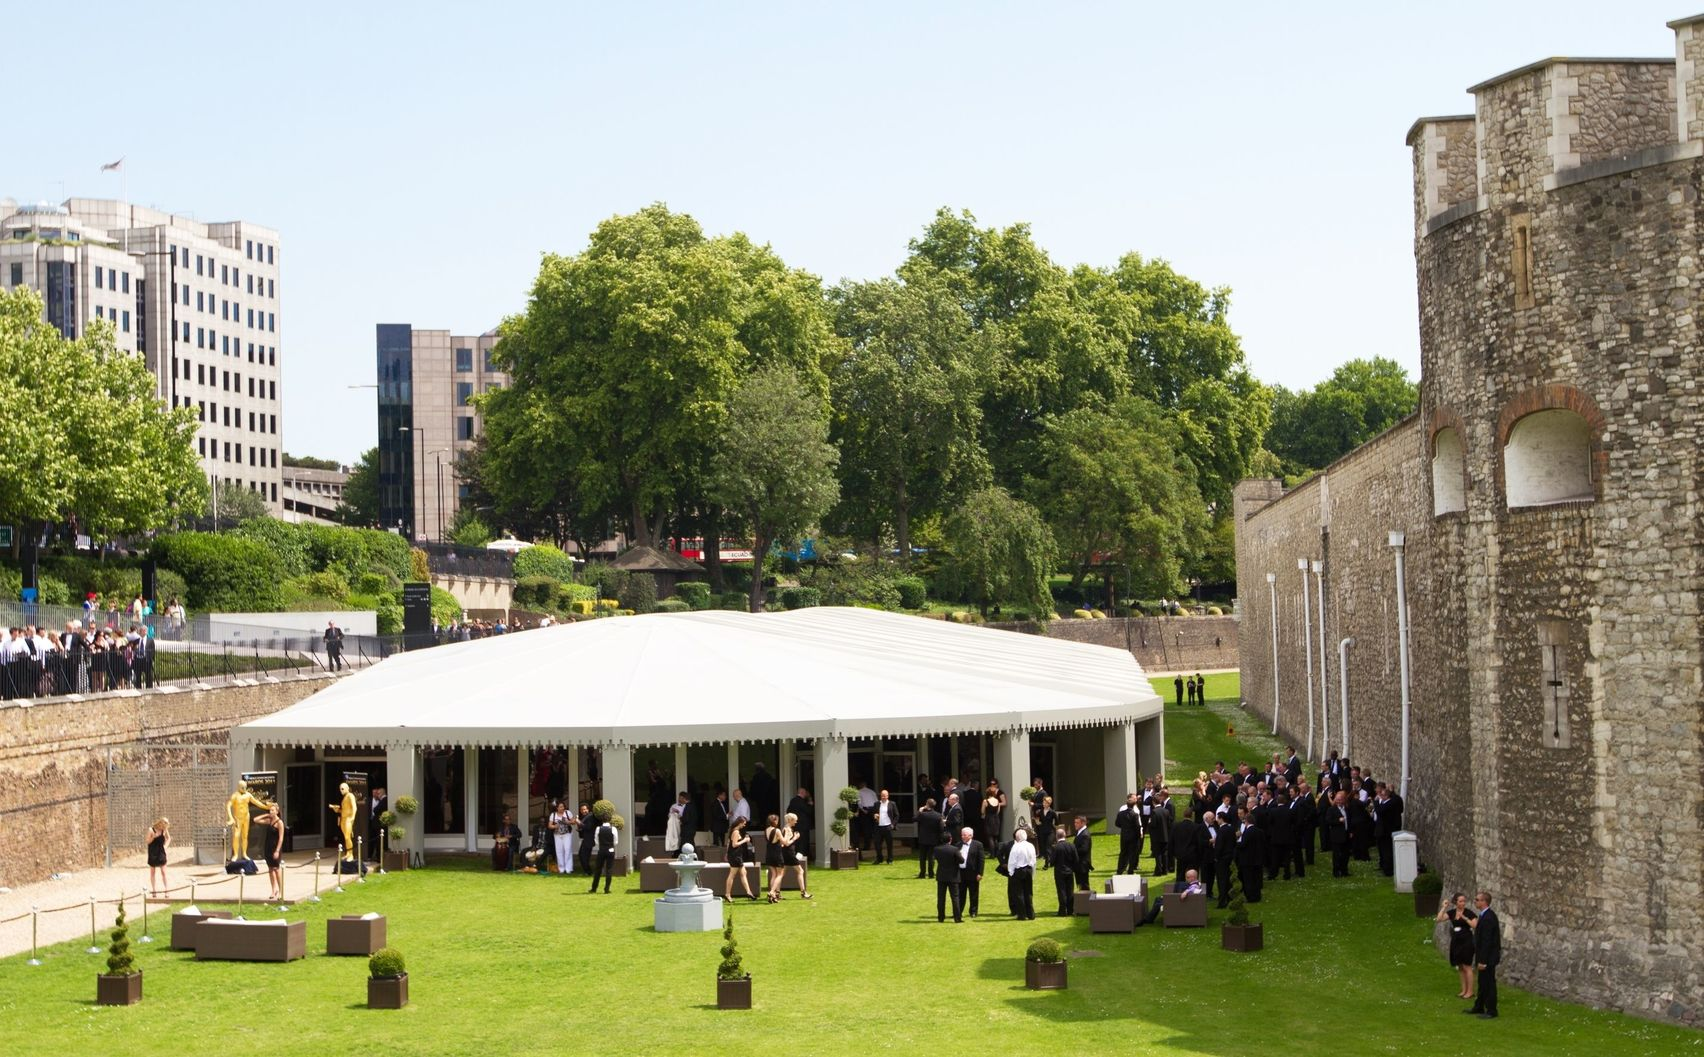 Summer at The Pavilion, Tower of London